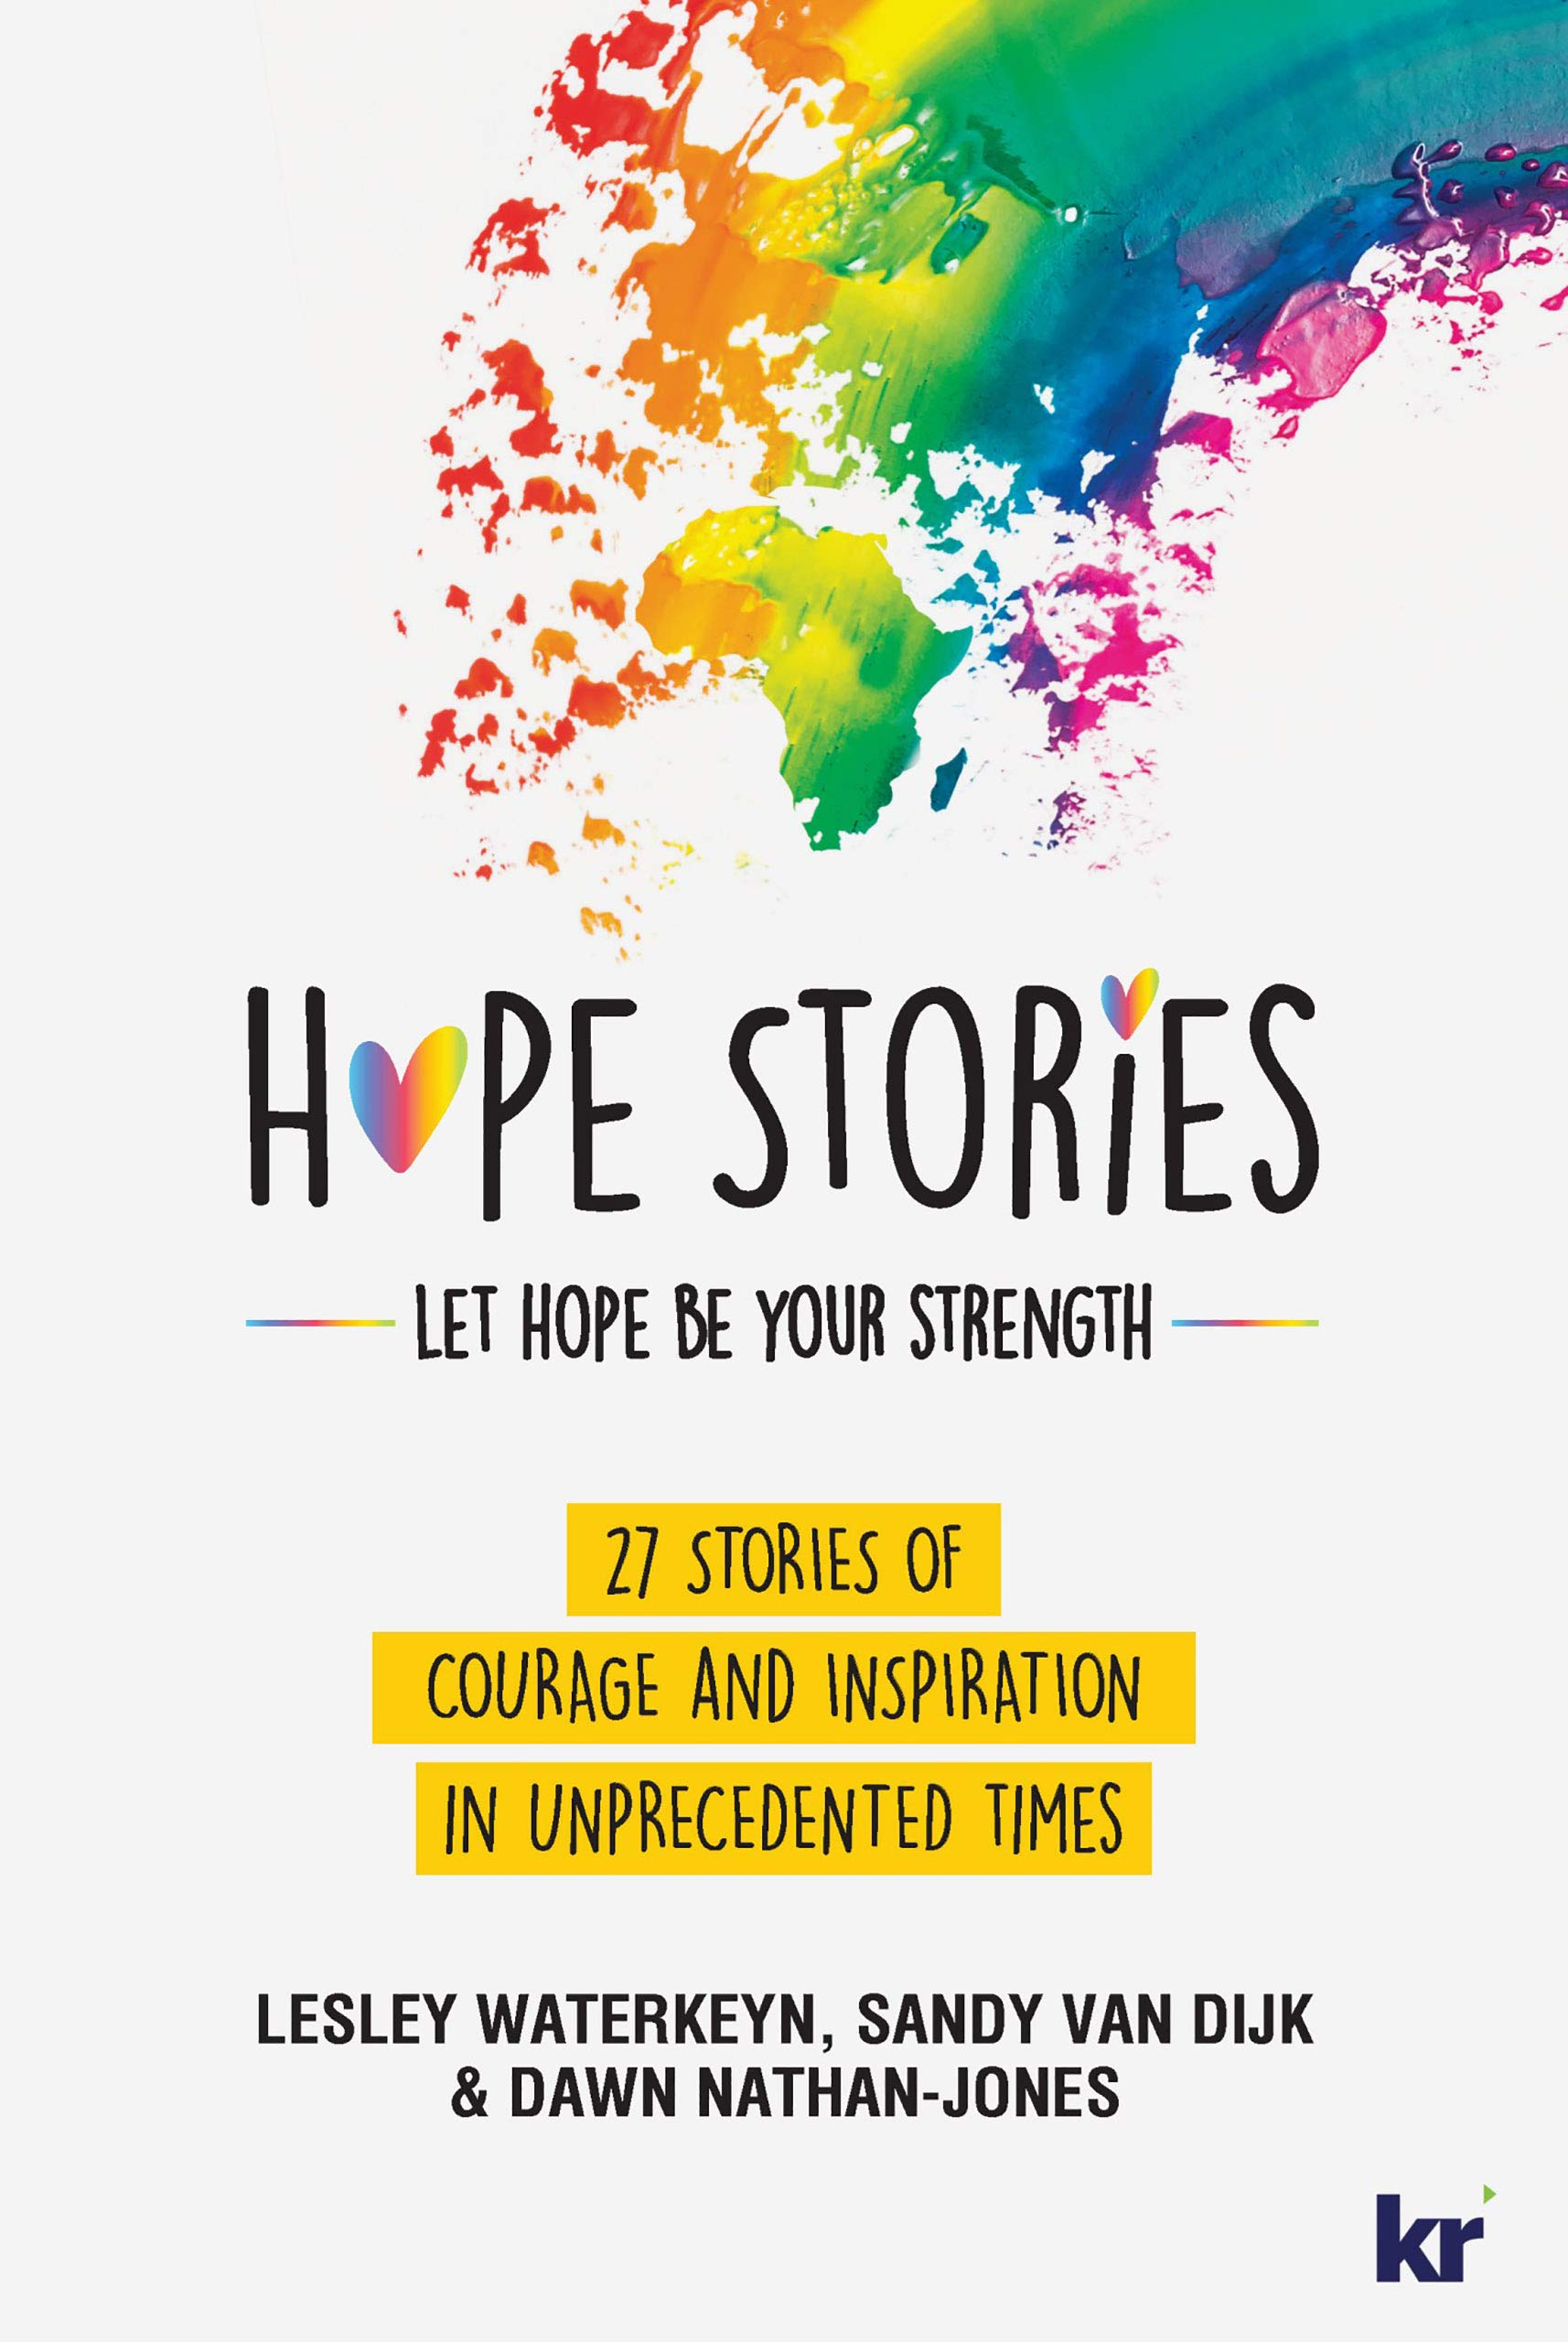 Hope Stories: 27 Stories of Courage and Inspiration in Unprecedented Times